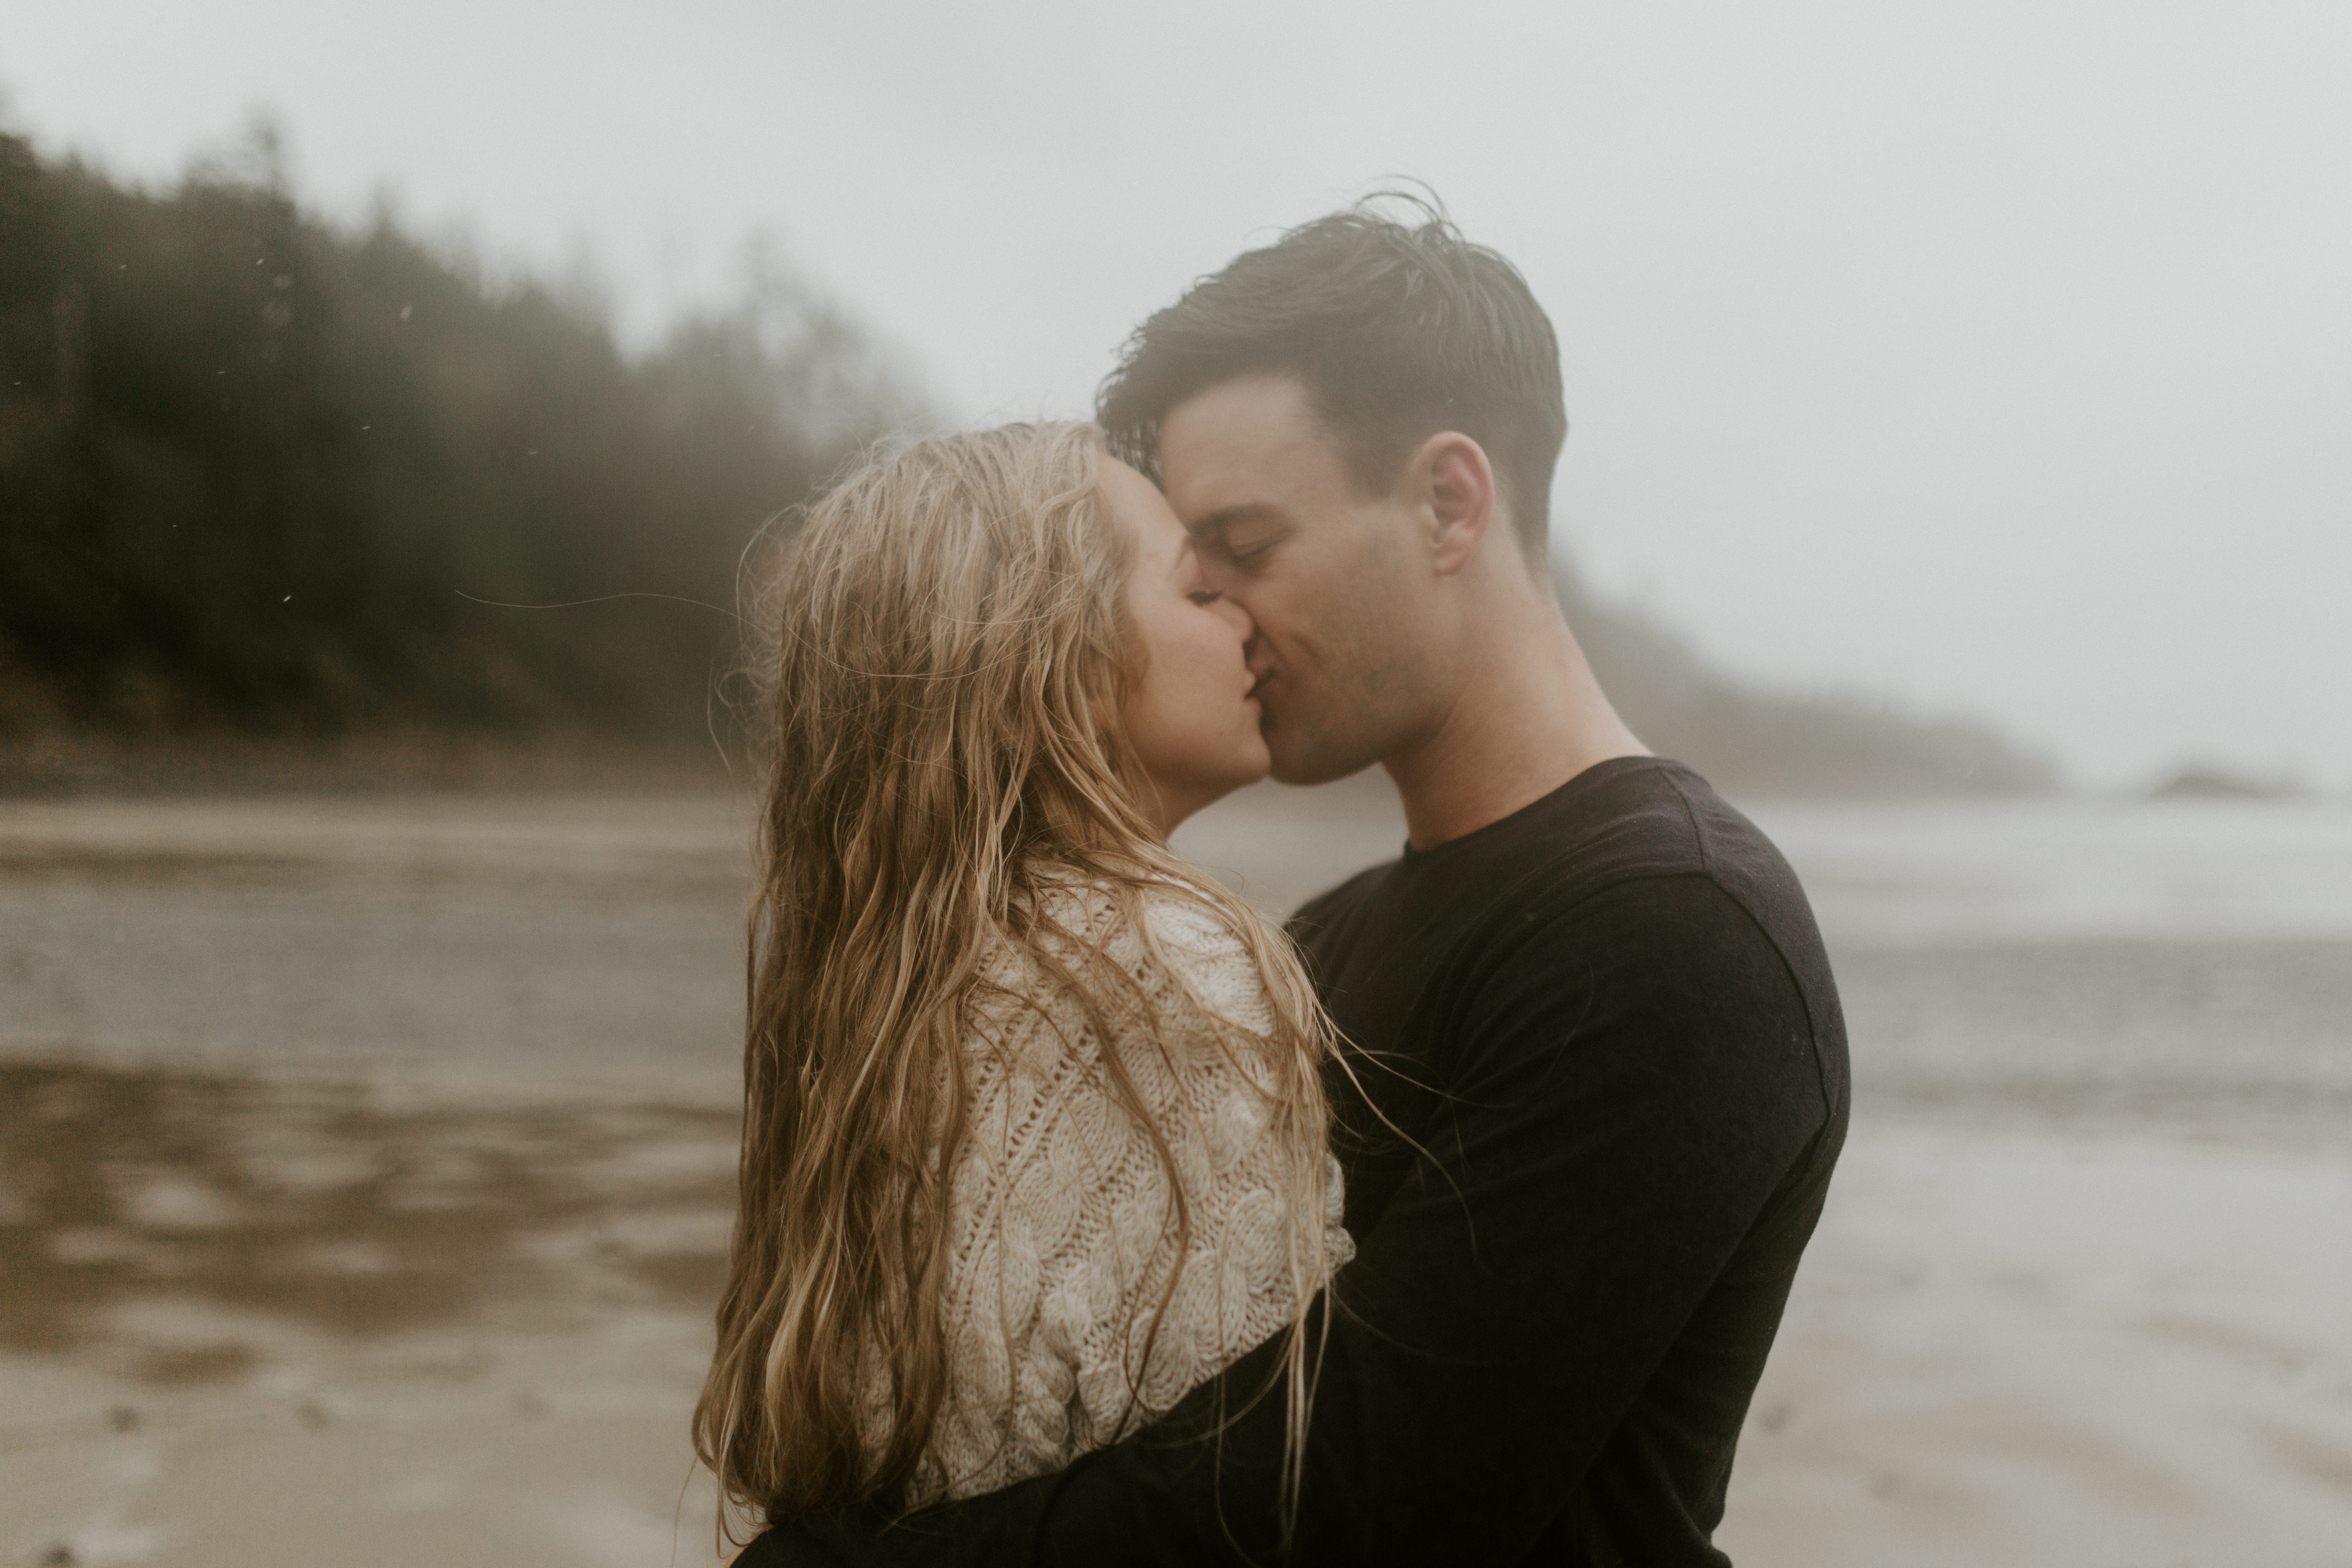 Hannah and Grant kiss in the rain on Indian Beach in Ecola State Park, Oregon. Engagement photography in Oregon by Sienna Plus Josh.